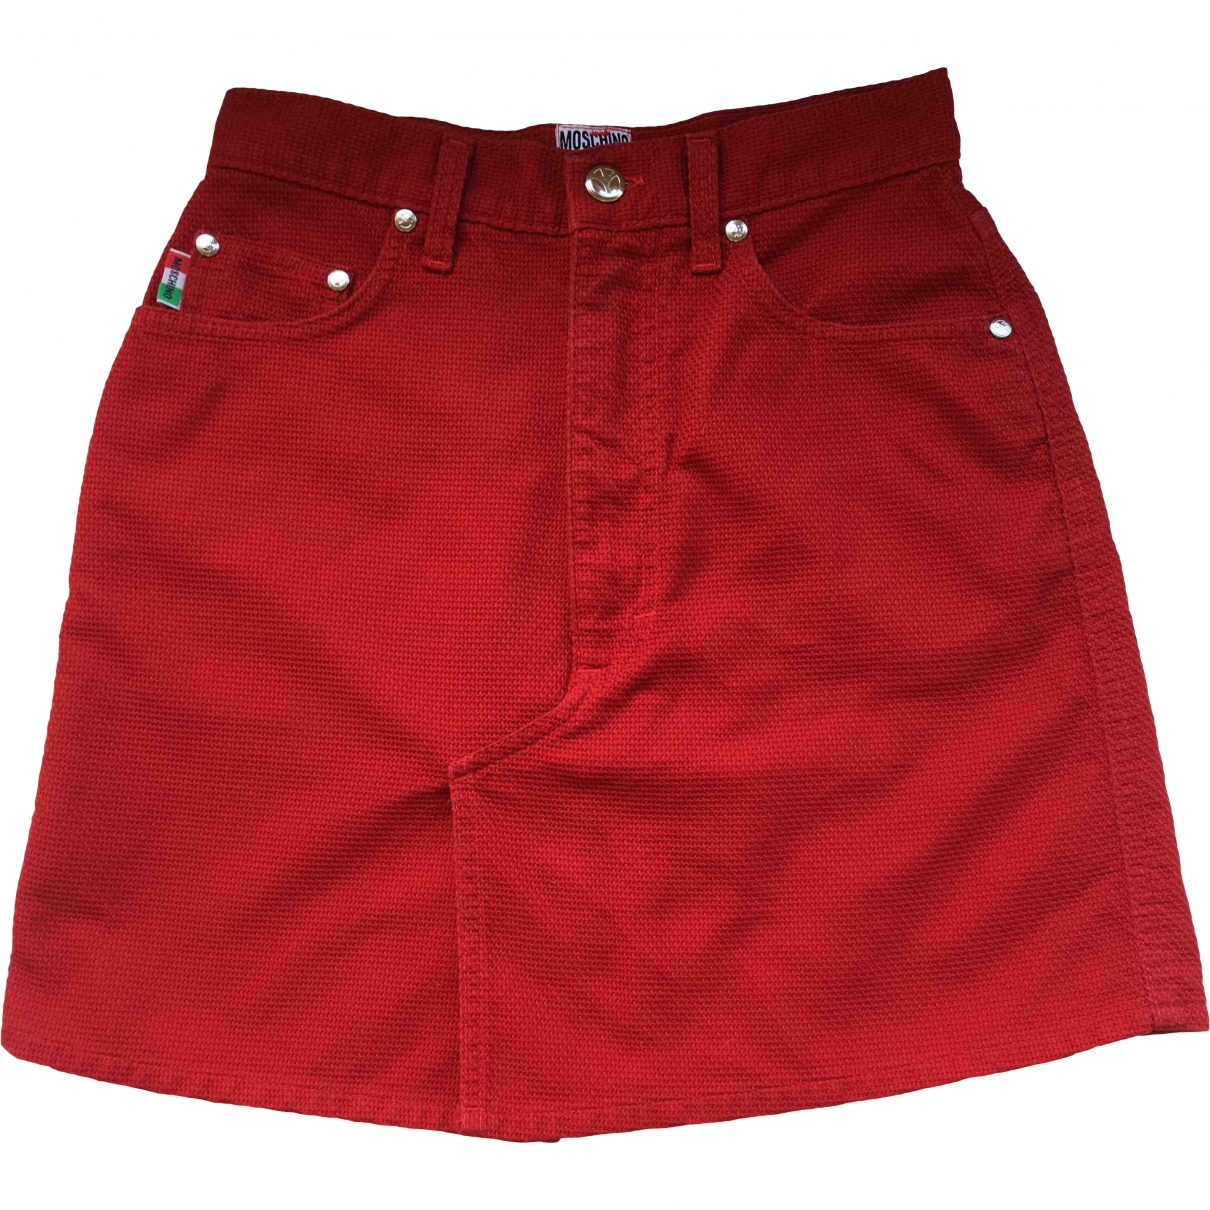 Moschino Love \N Red Cotton skirt for Women 36 FR